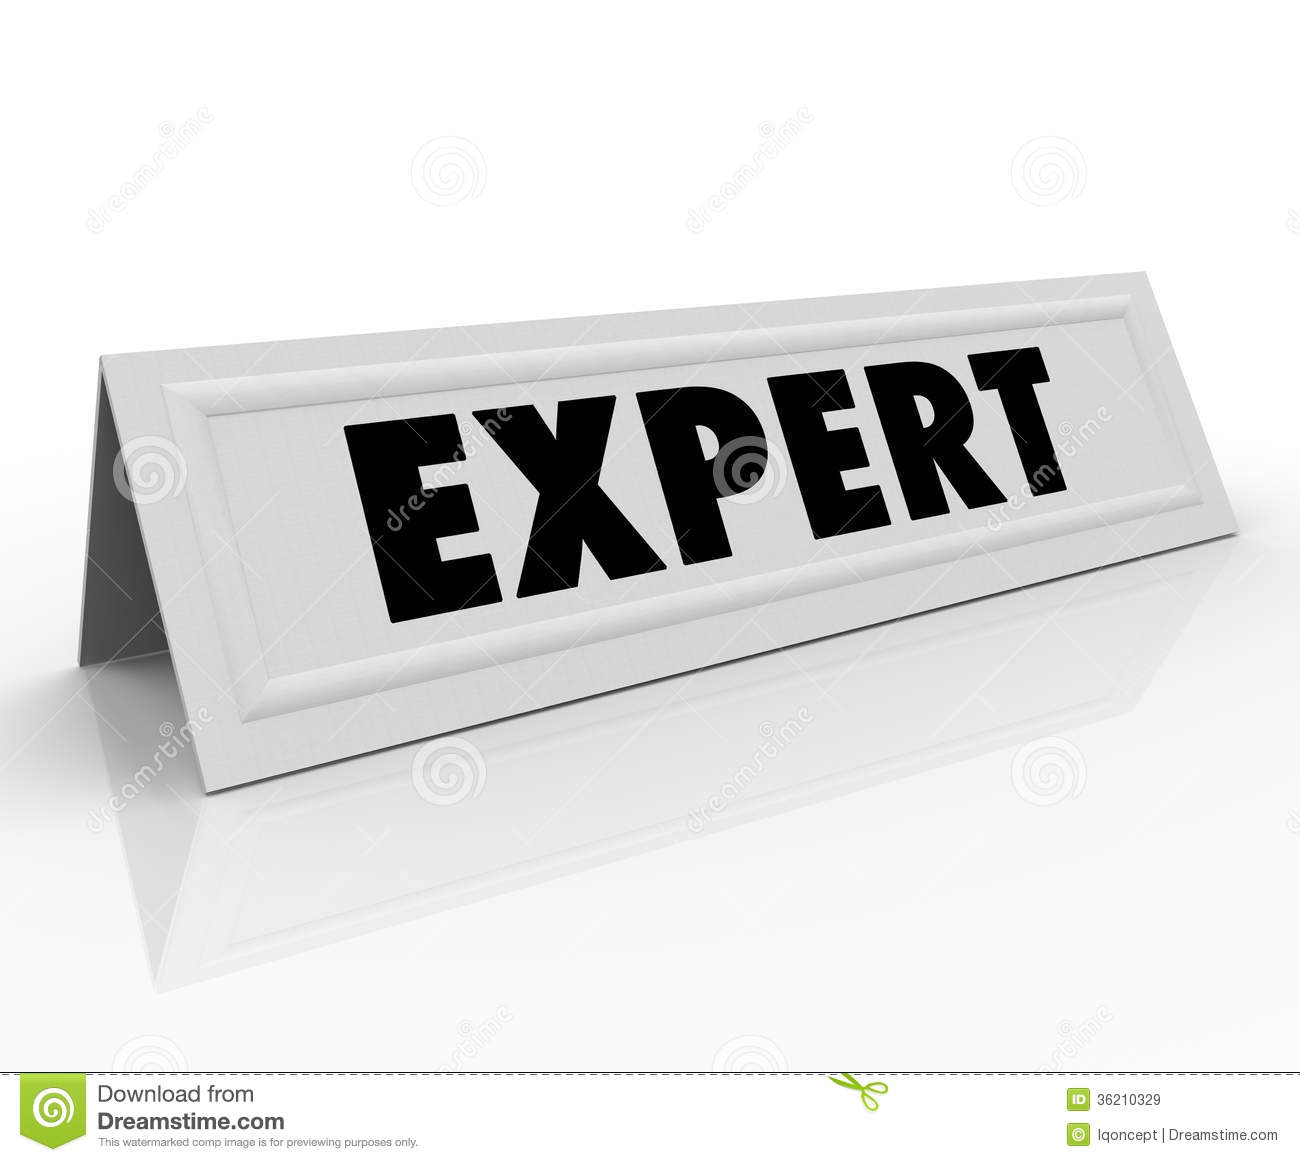 Nameguesty: Expert Name Tent Card Guest Speaker Expertise Experience